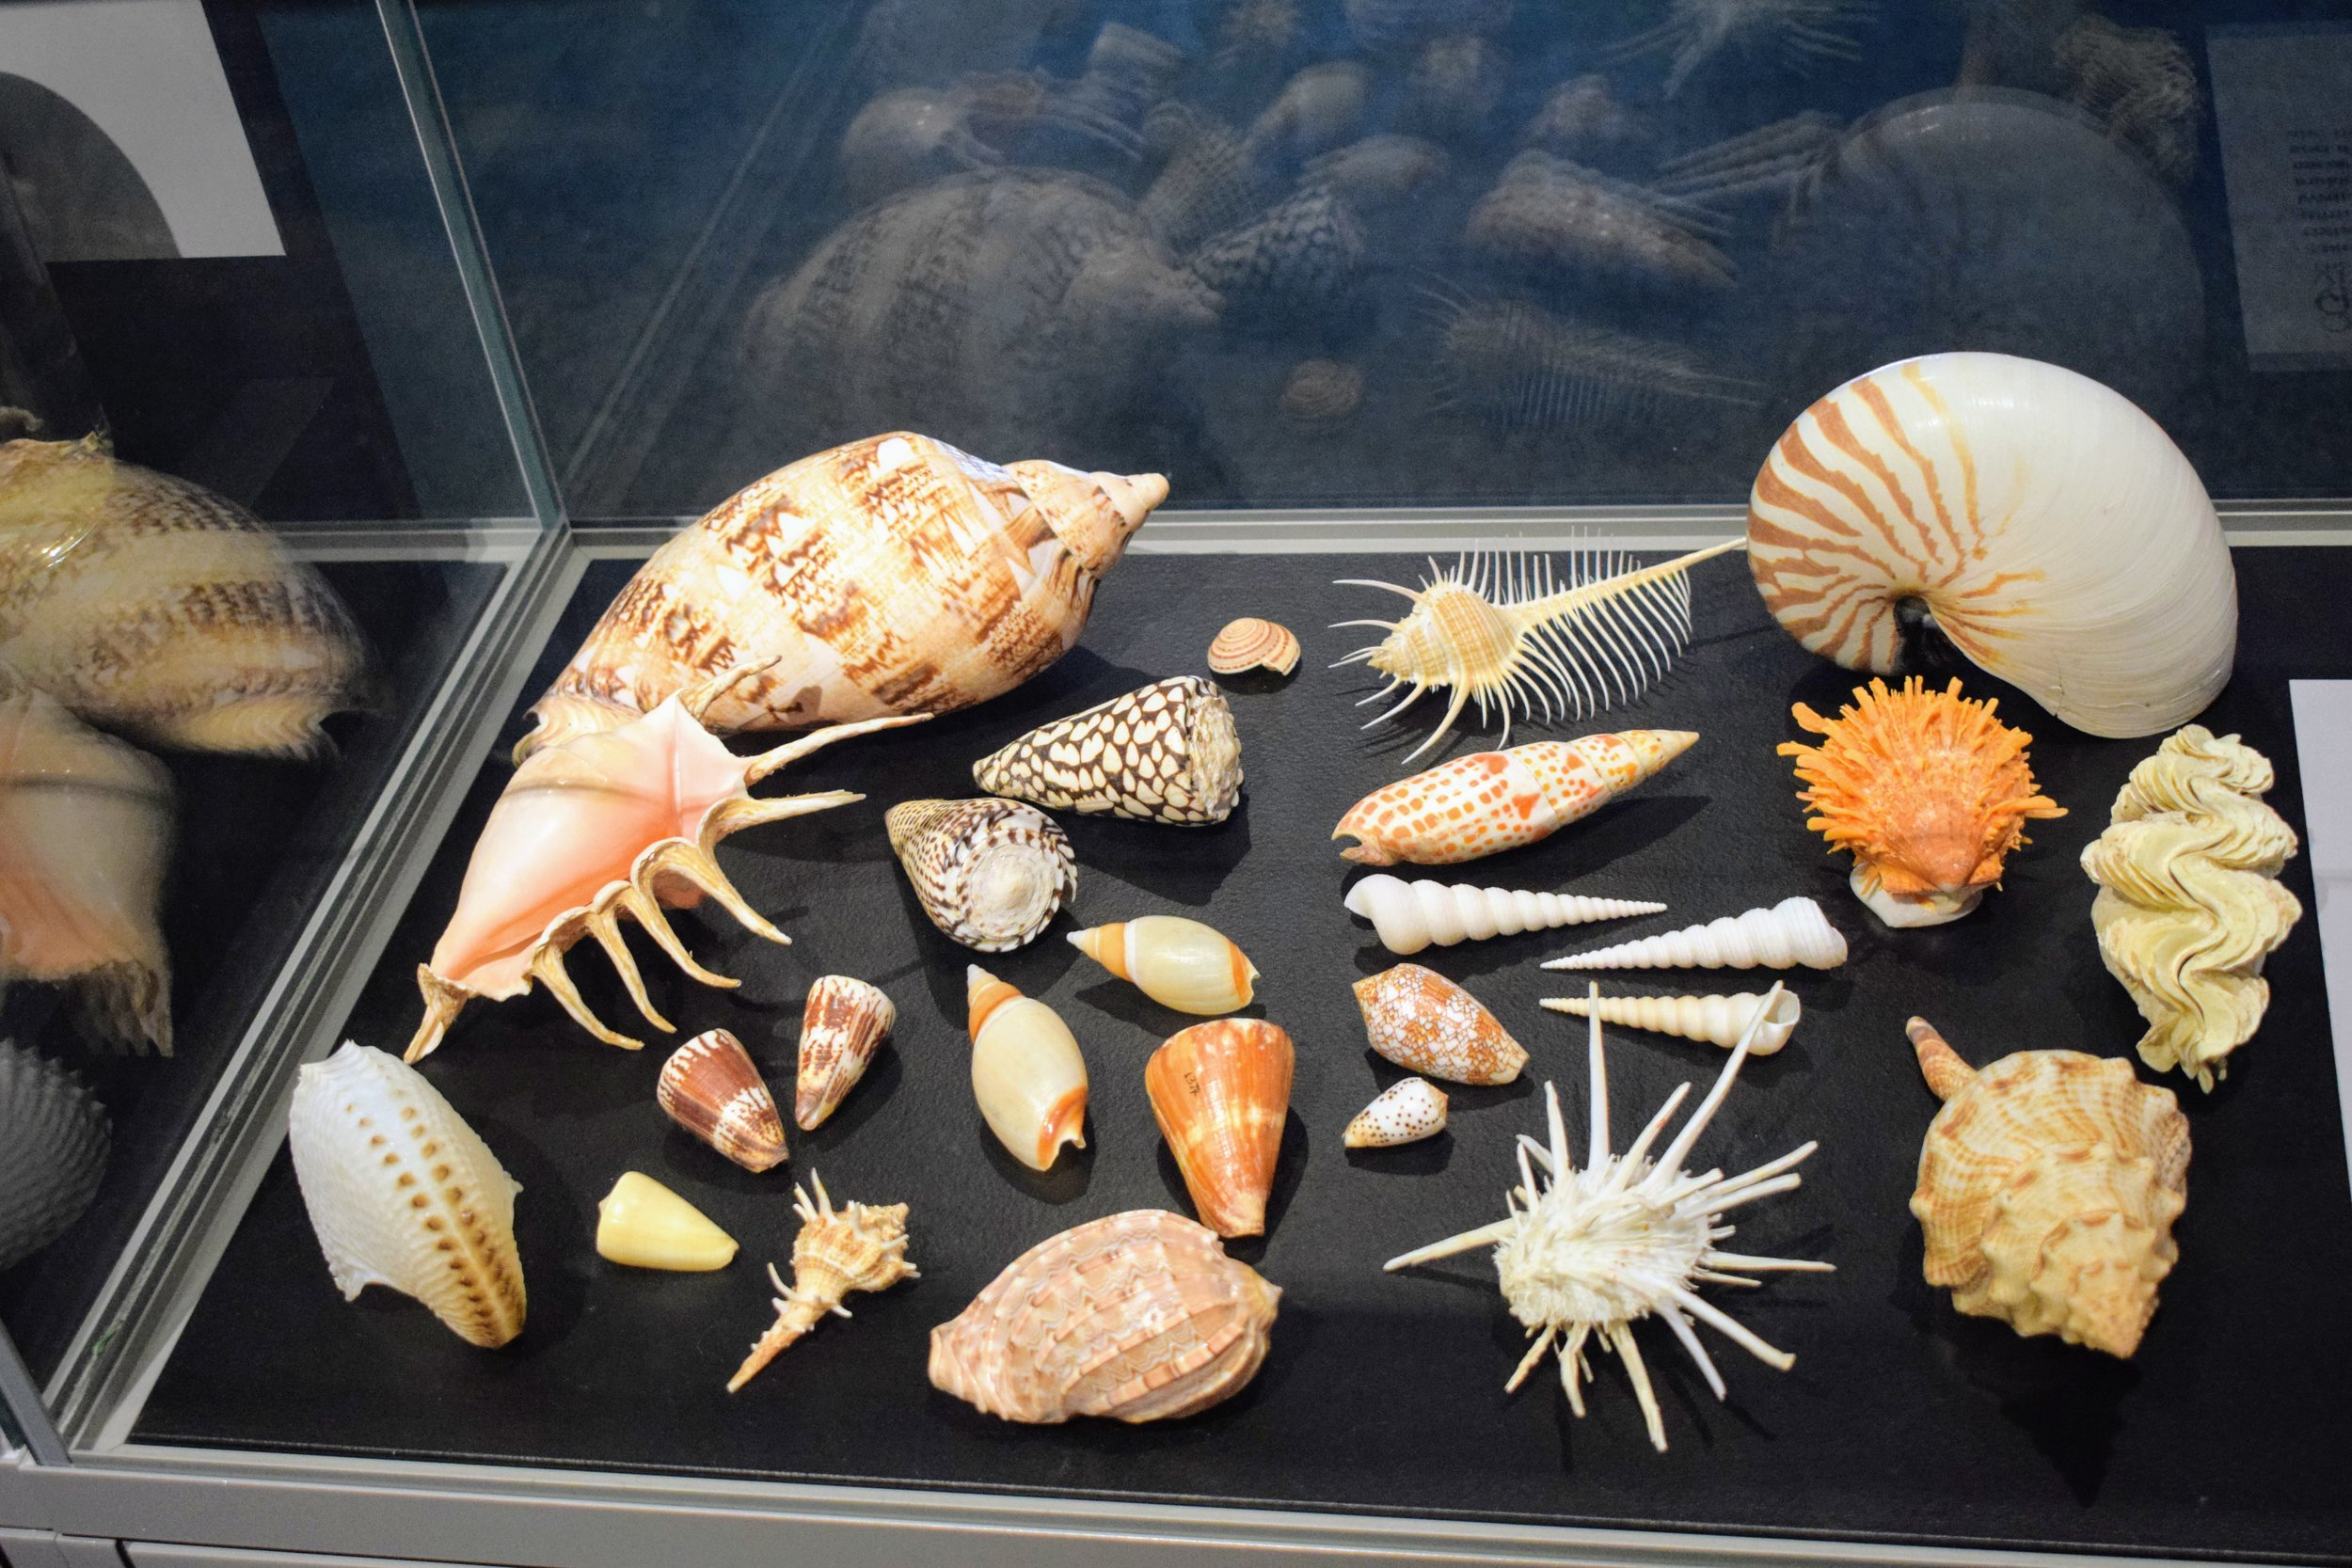 Of course the seashell exhibits were one of my favorite displays at the Queensland Museum. Look at these beauties!